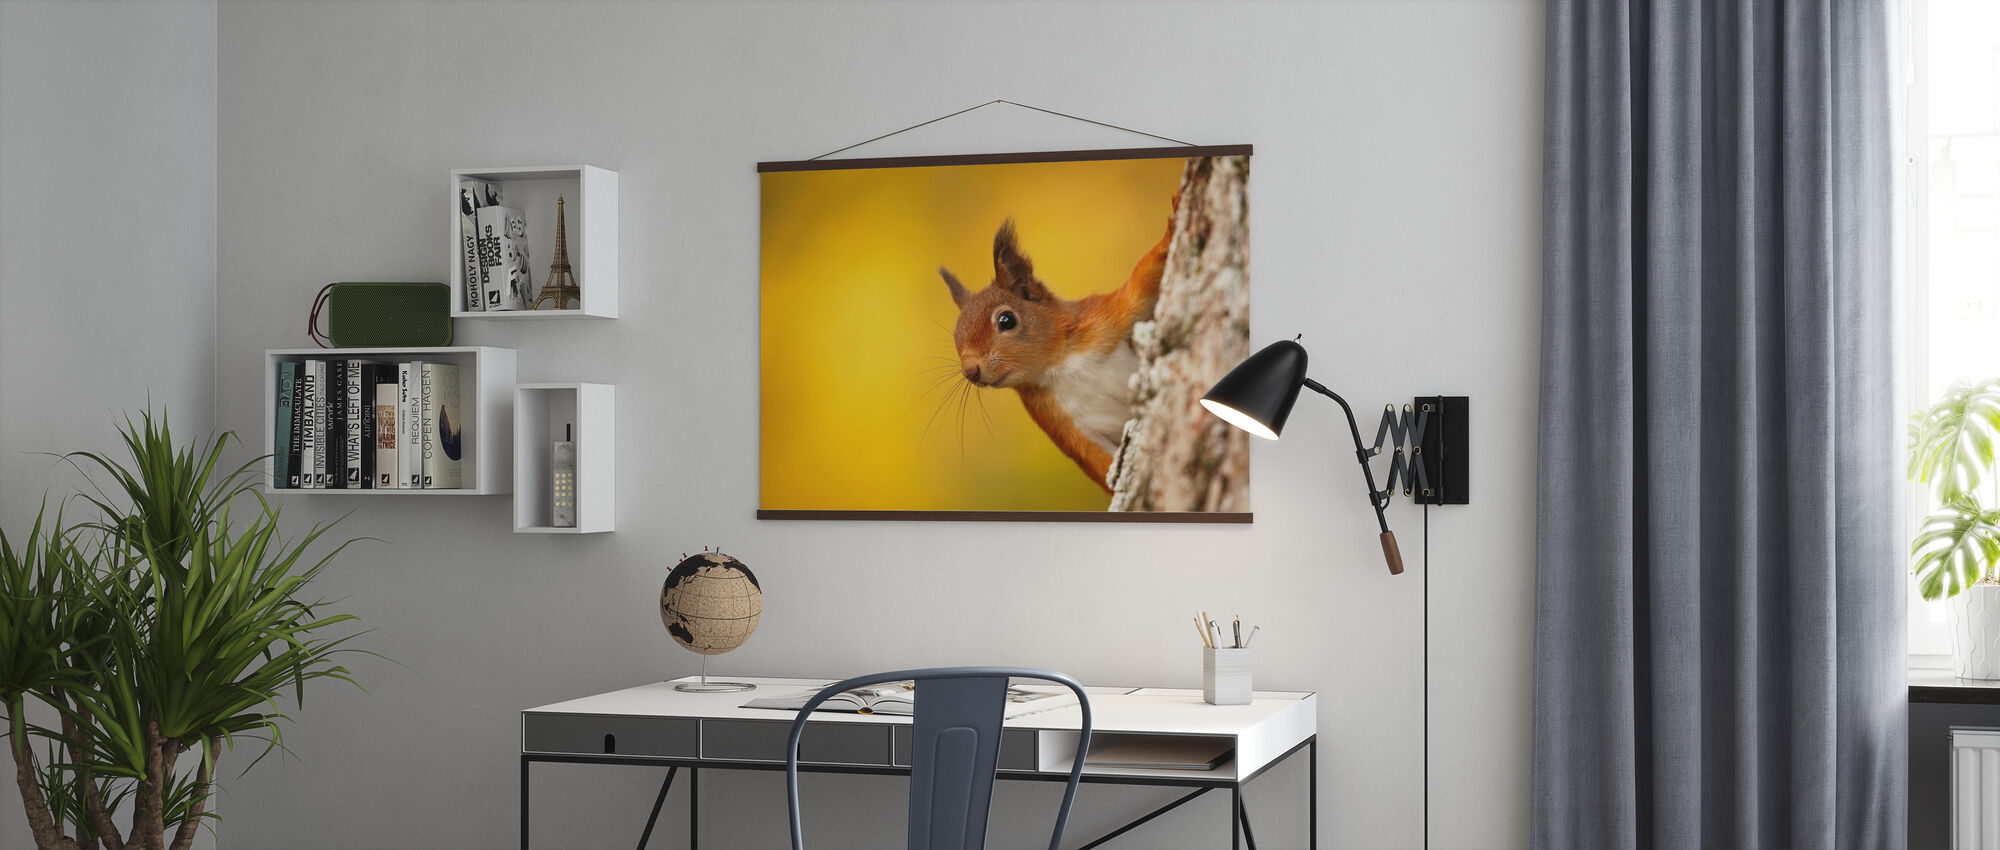 Red Squirrel with Autumn Colors - Poster - Office